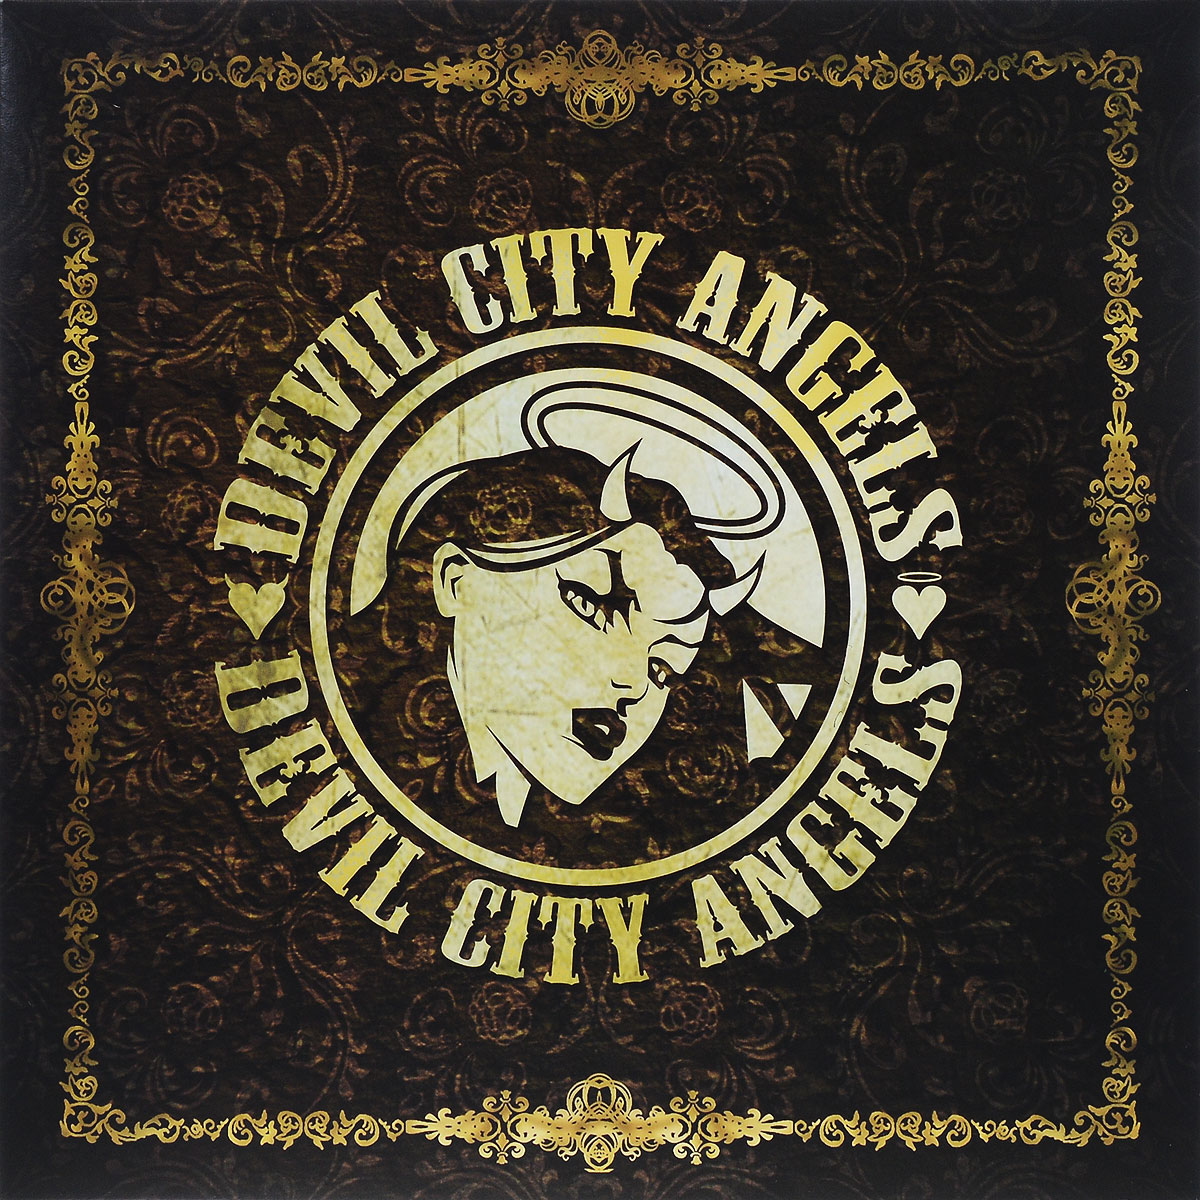 Devil City Angels Devil City Angels. Devil City Angels (LP) резинка для волос черная tais ут 00017860